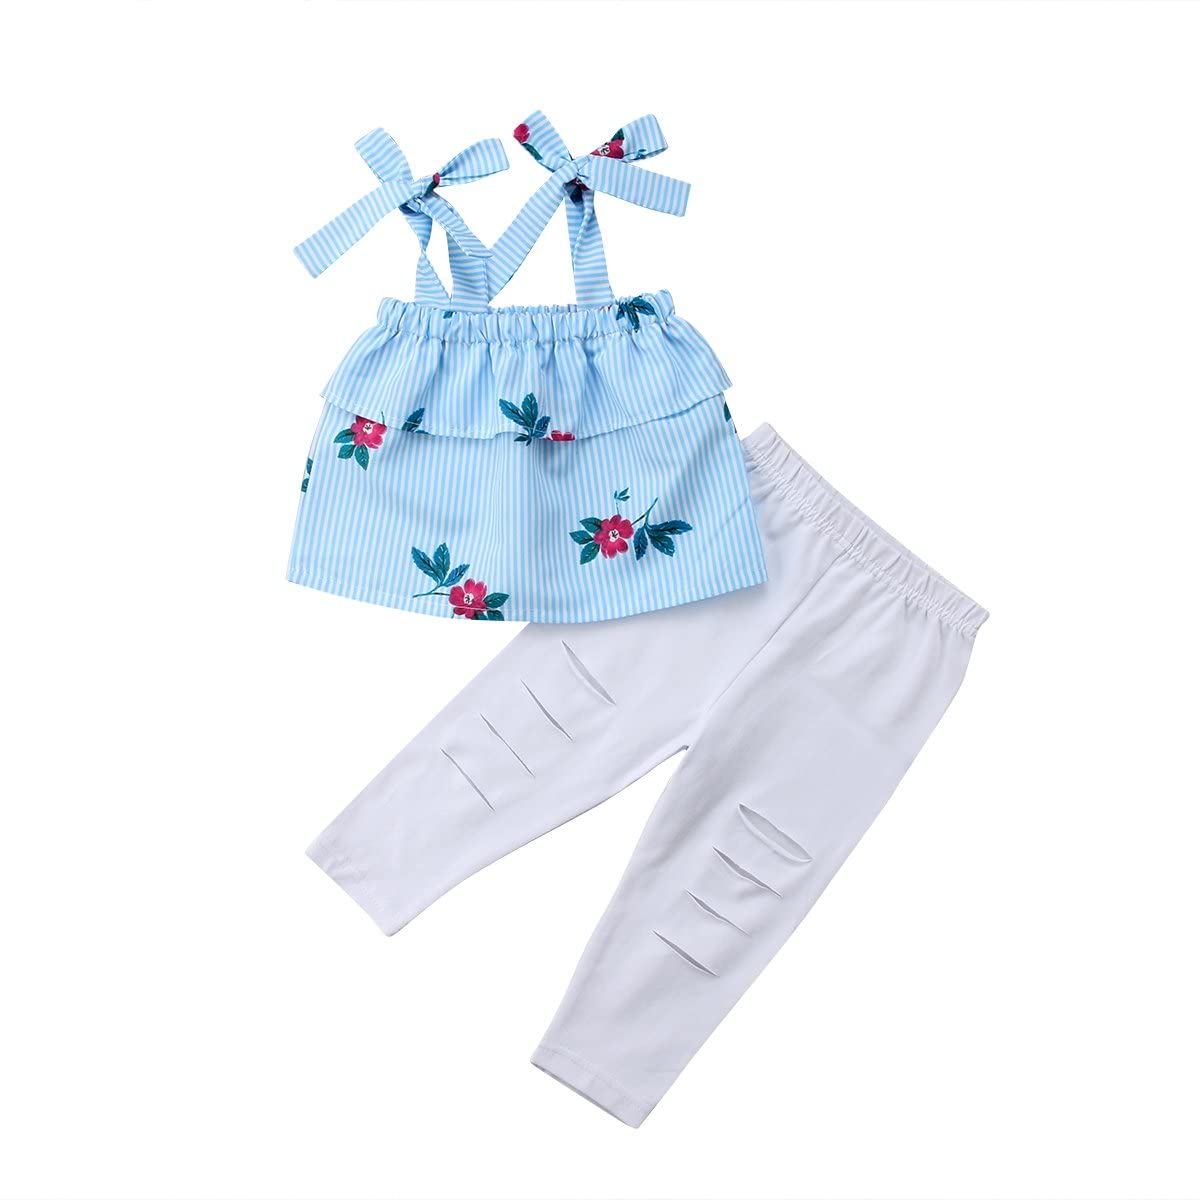 Mother and Daughter Ruffle Off Shoulder Floral Tops White Hole Pants Family Matching Clothes